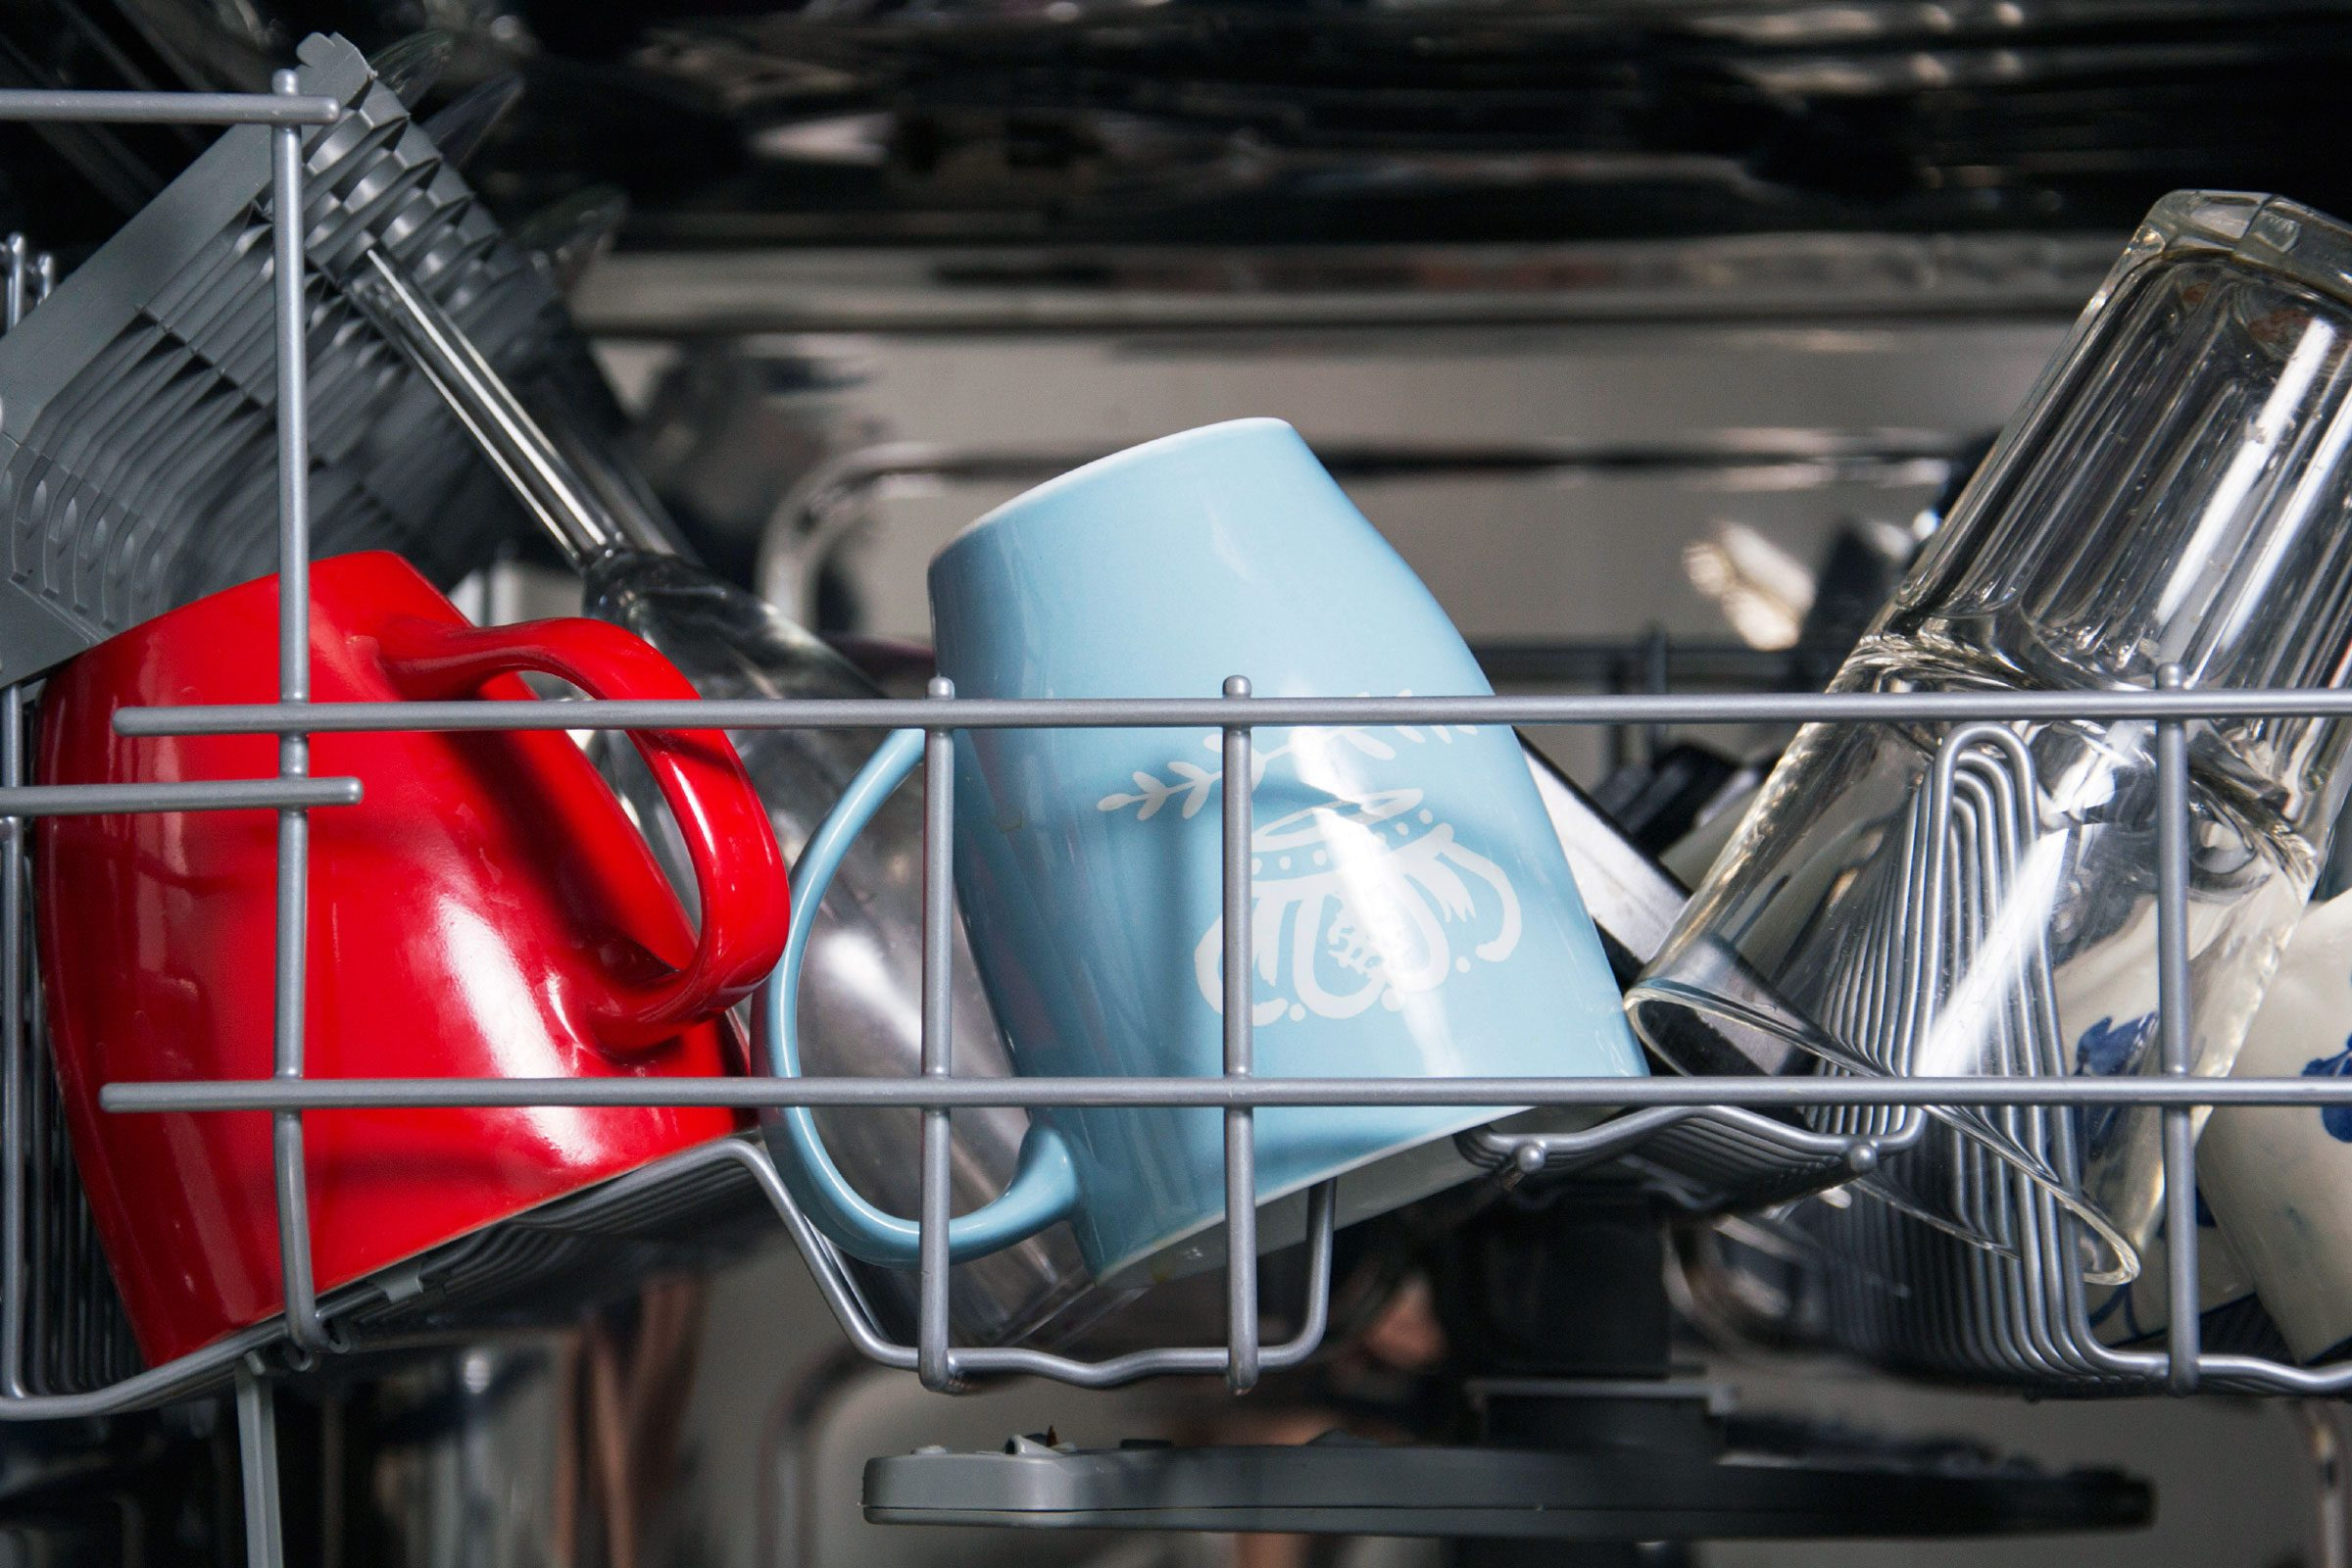 Myth: It's better to wash dishes by hand